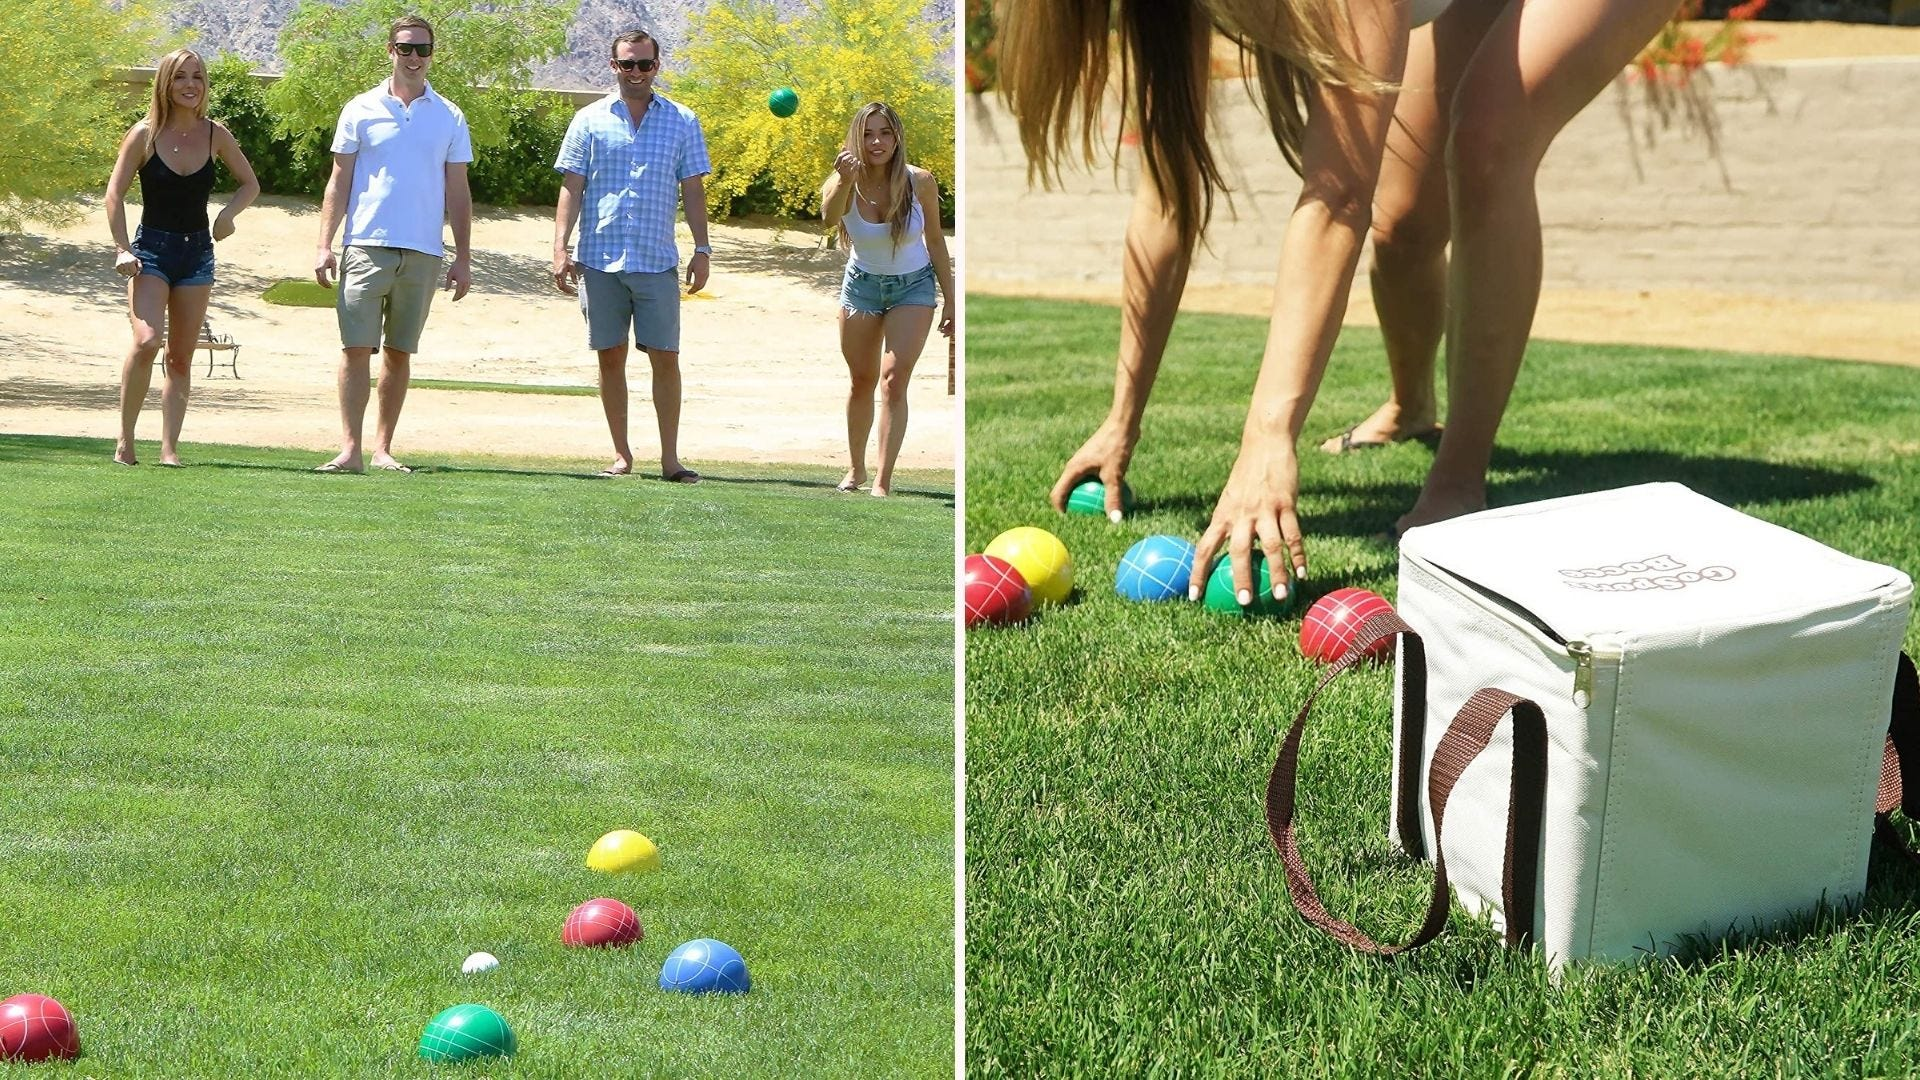 A family playing bocce on the grass